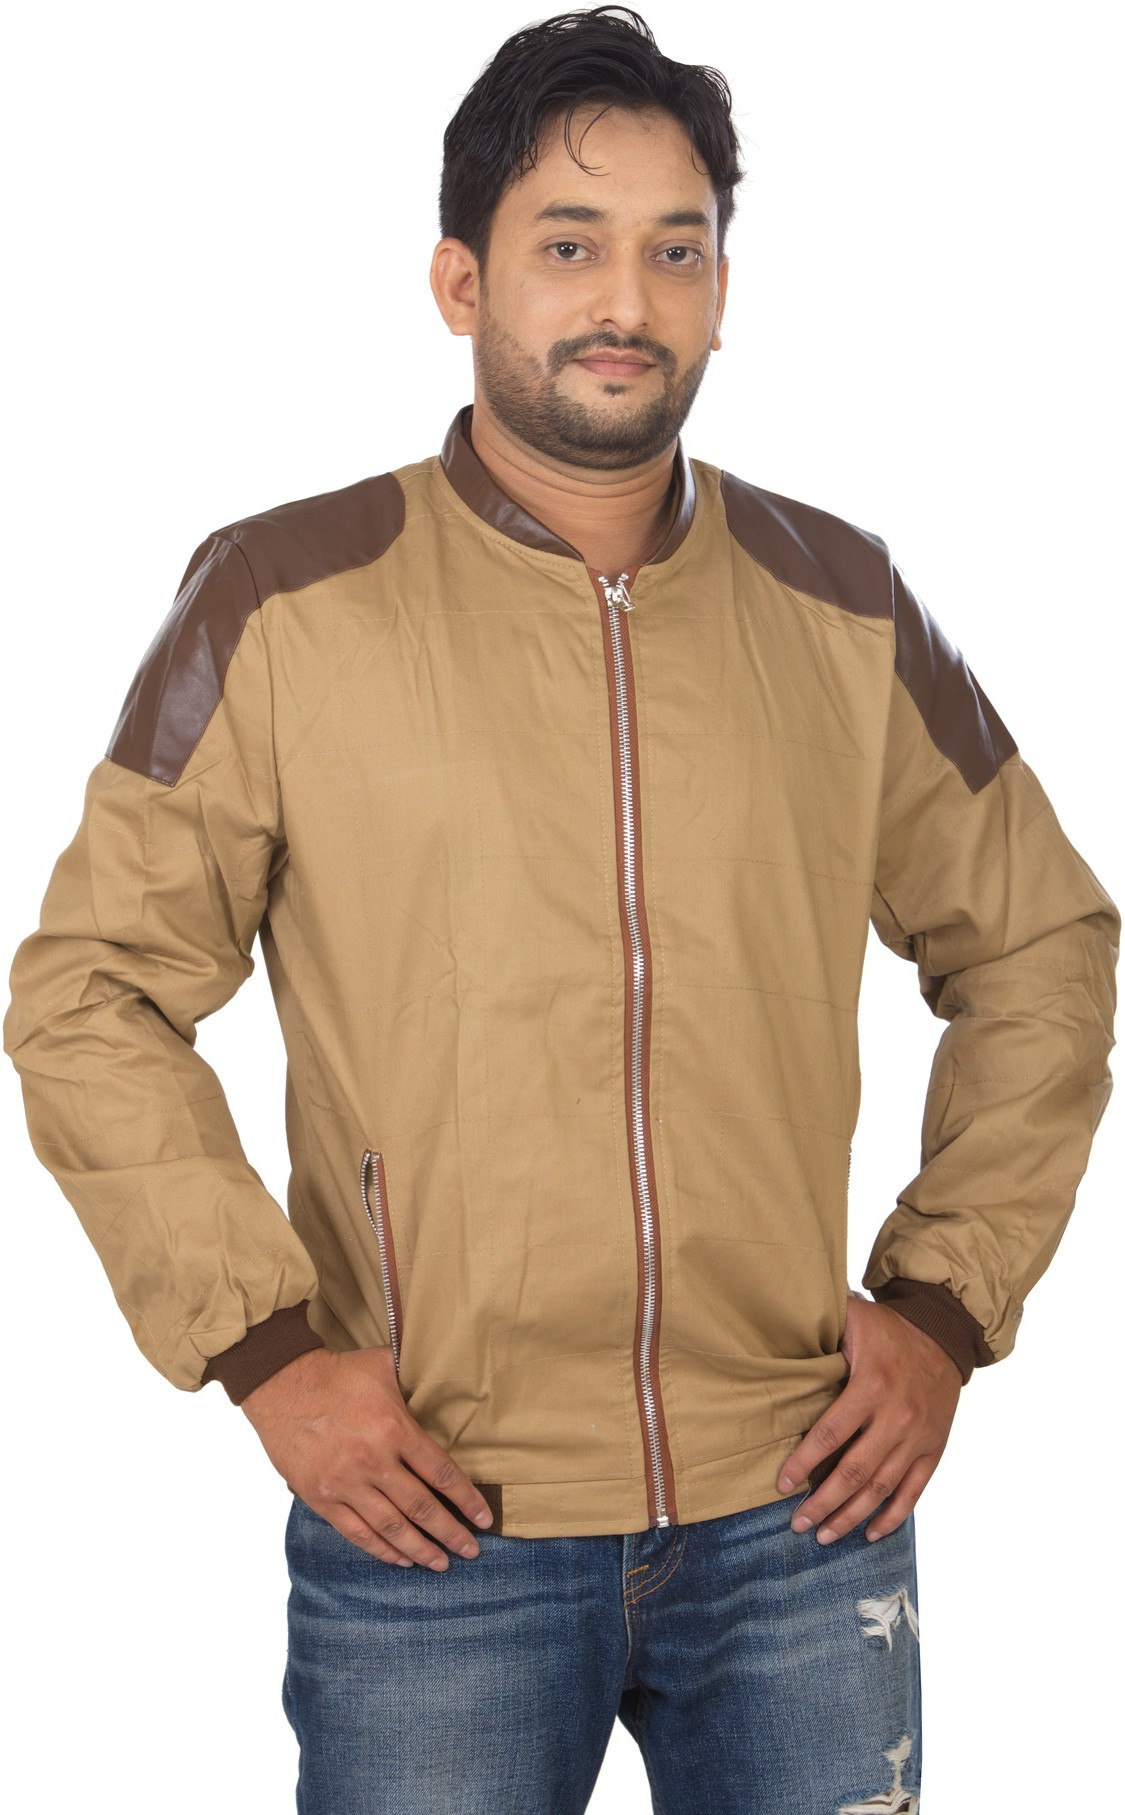 Modo Vivendi Full Sleeve Solid Mens Outerwear Jacket